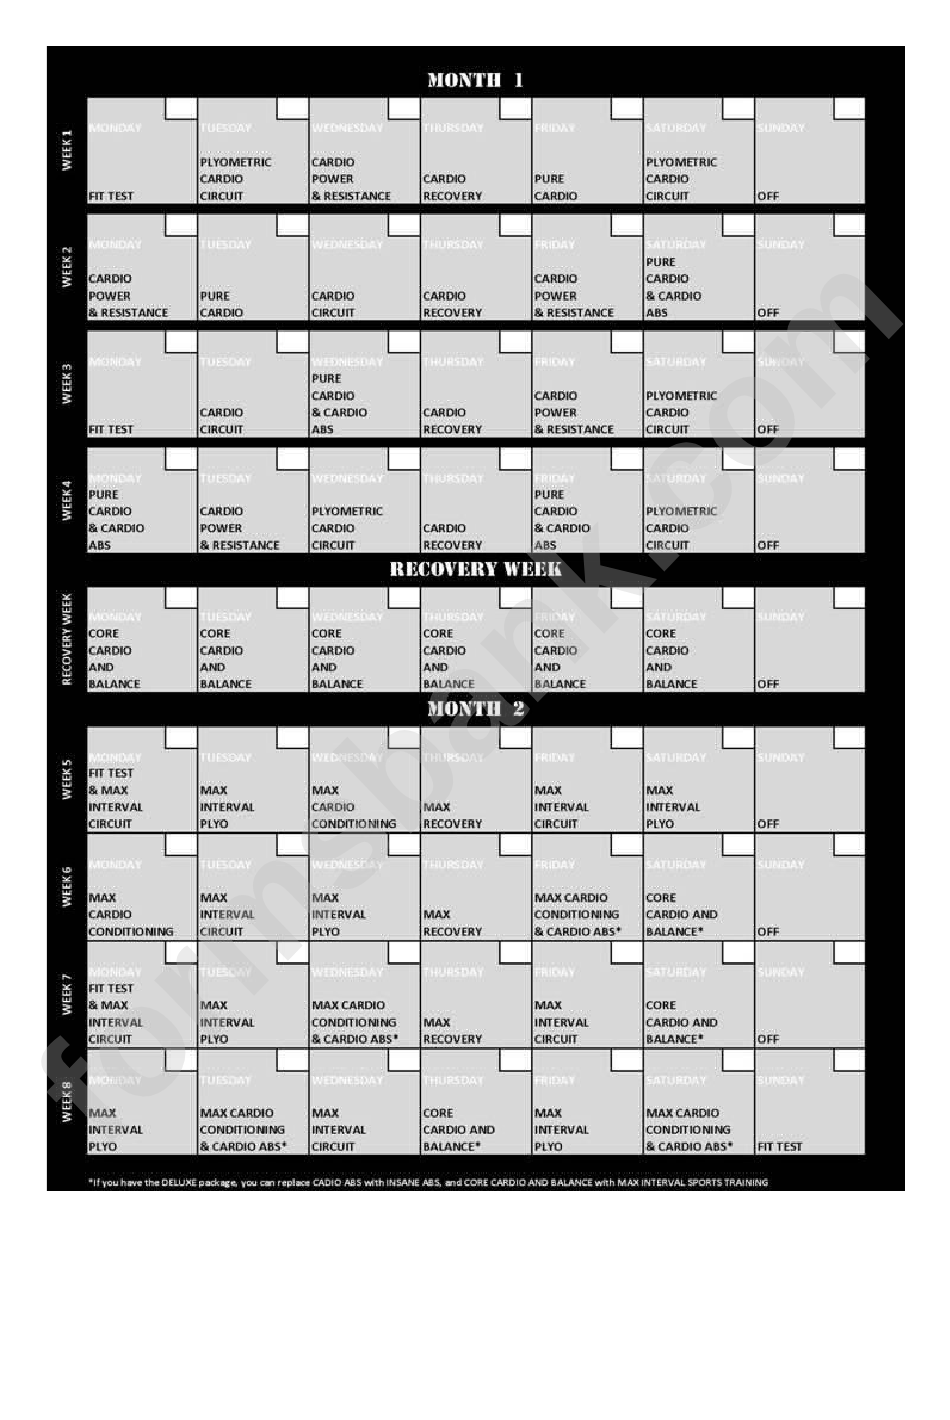 Insanity Workout Schedule Printable Pdf Download